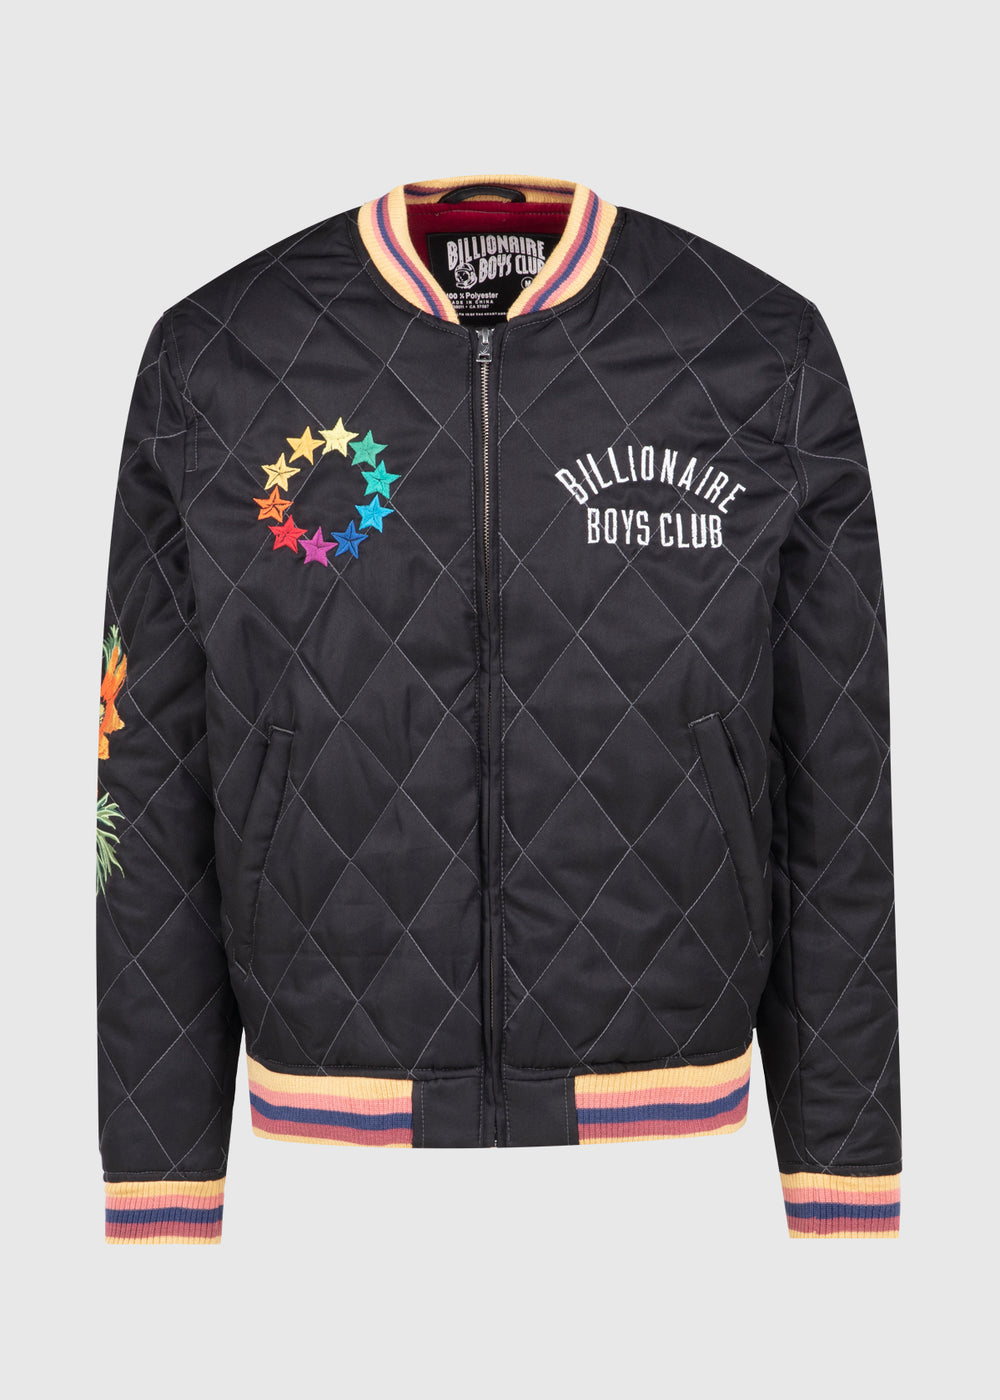 billionaire-boys-club-bbc-inner-pc-jkt-801-1401-blk-1